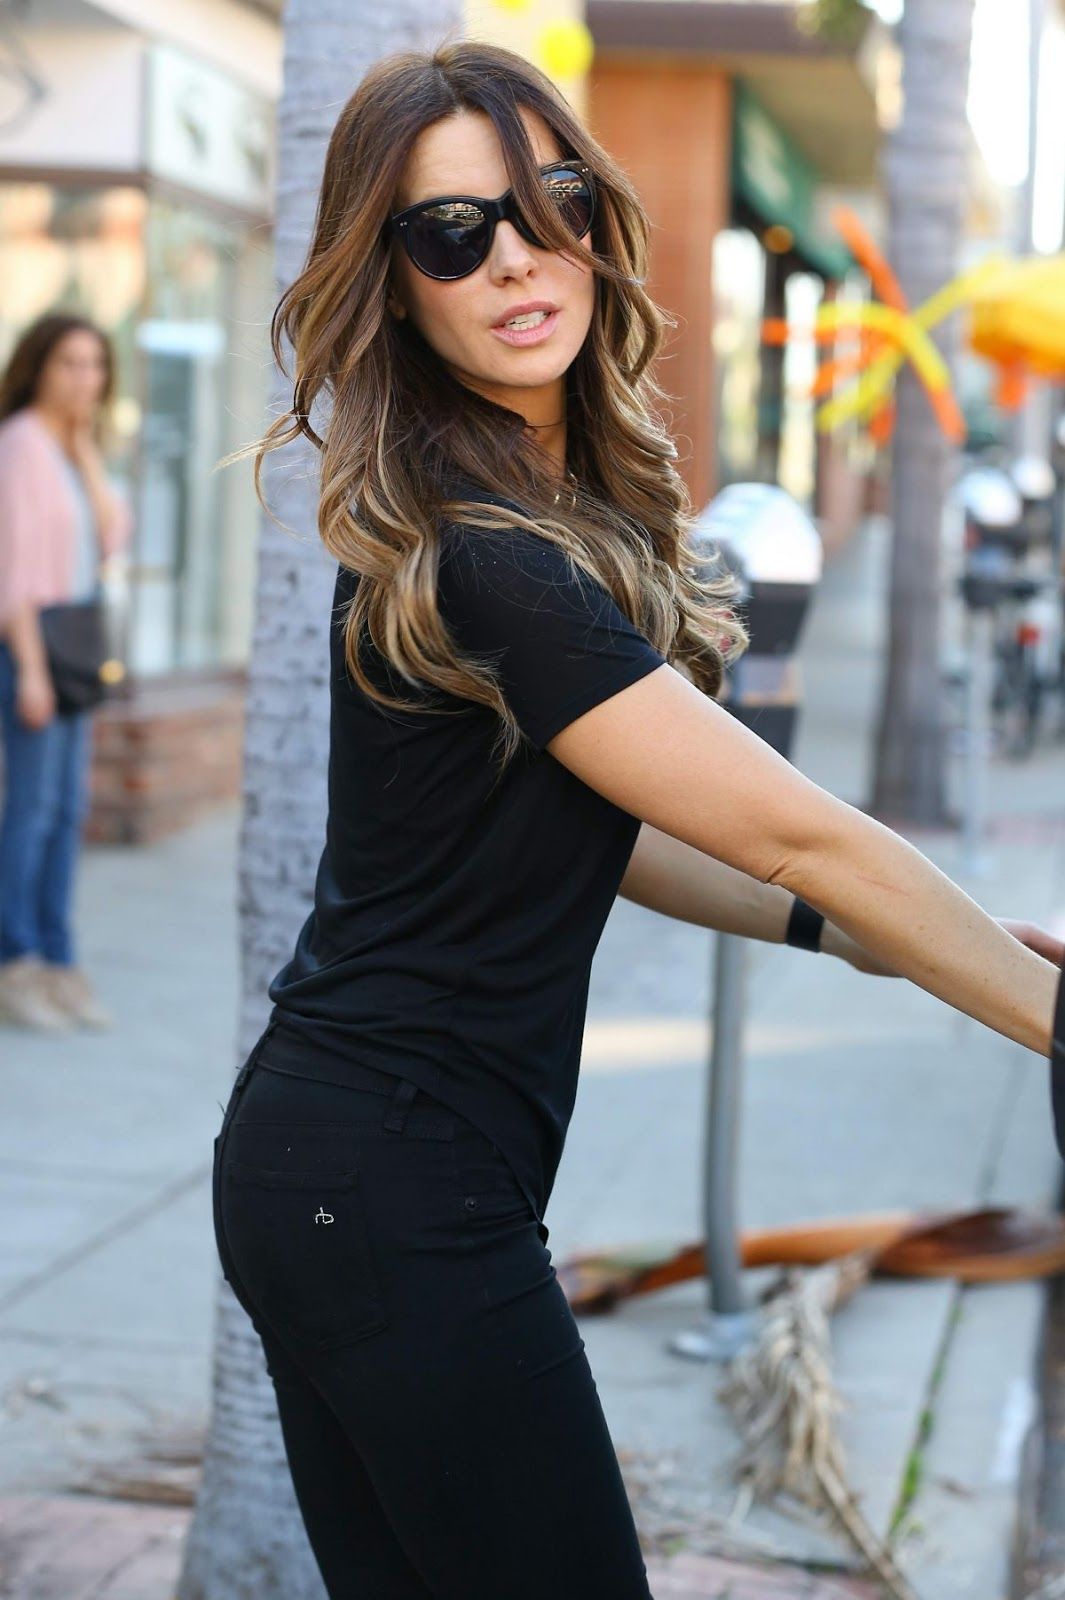 HQ Photos of Kate Beckinsale with Hot Sunglasses Out Shopping In Los Angeles